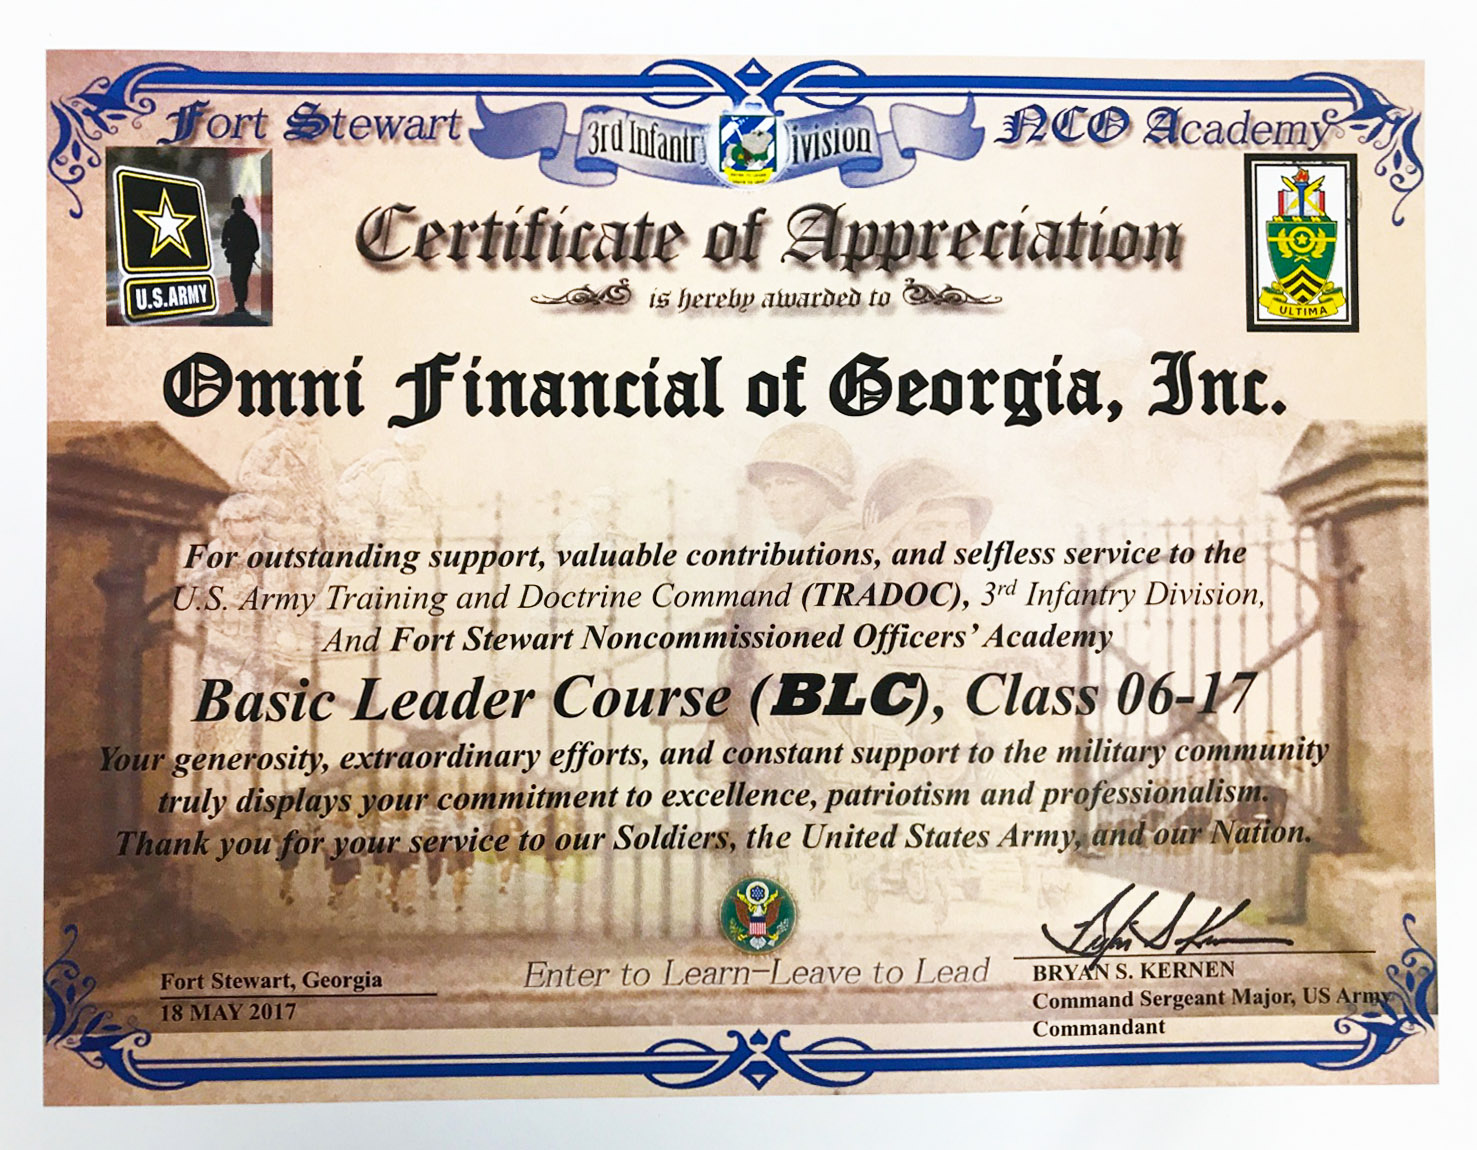 Felicitation certificate template image collections templates army certificate of appreciation coupon template free generic omni military loans in hinesville ga 3rd infantry xflitez Image collections